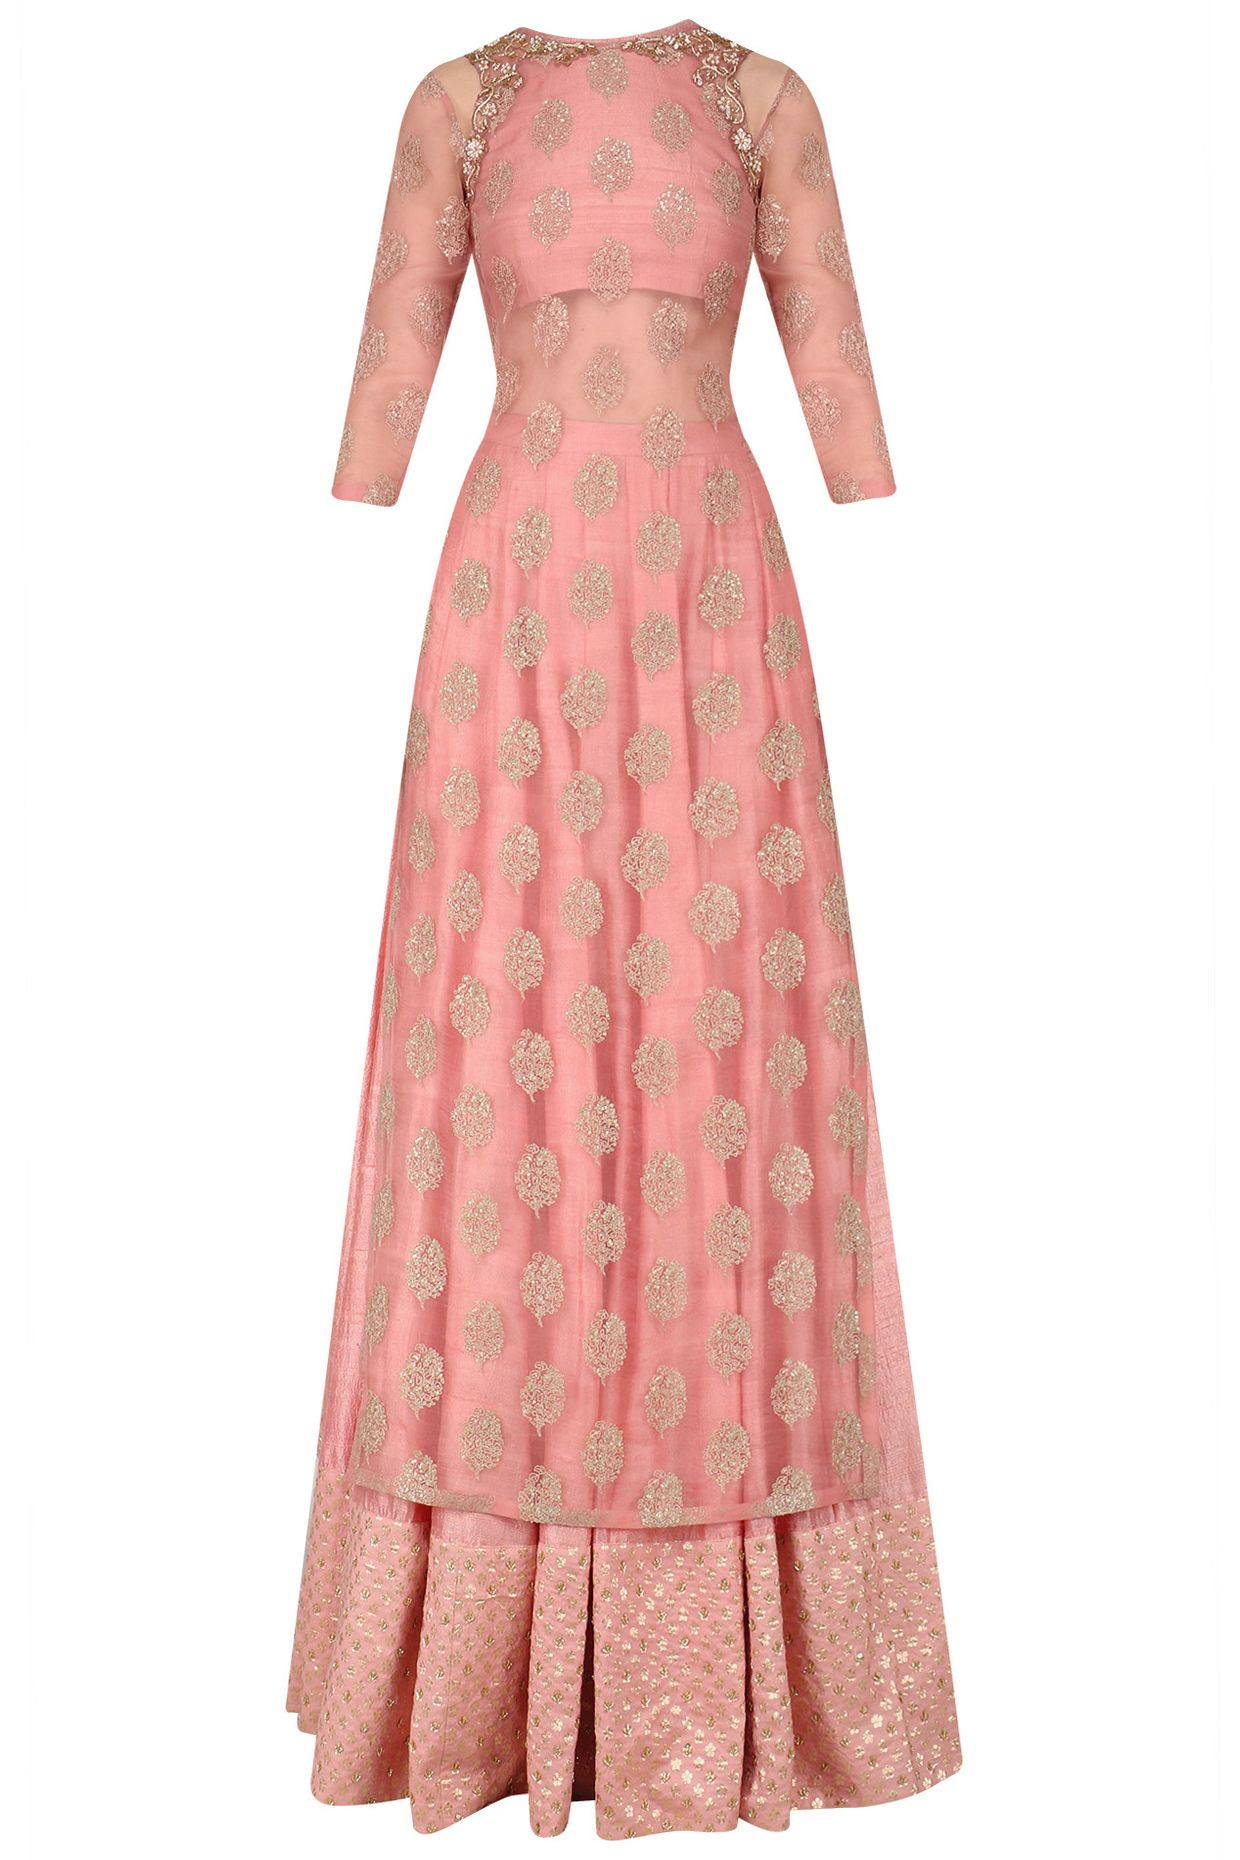 a4d7c7244 Dusty pink embroidered kurta lehenga set available only at Pernia's Pop Up  Shop.